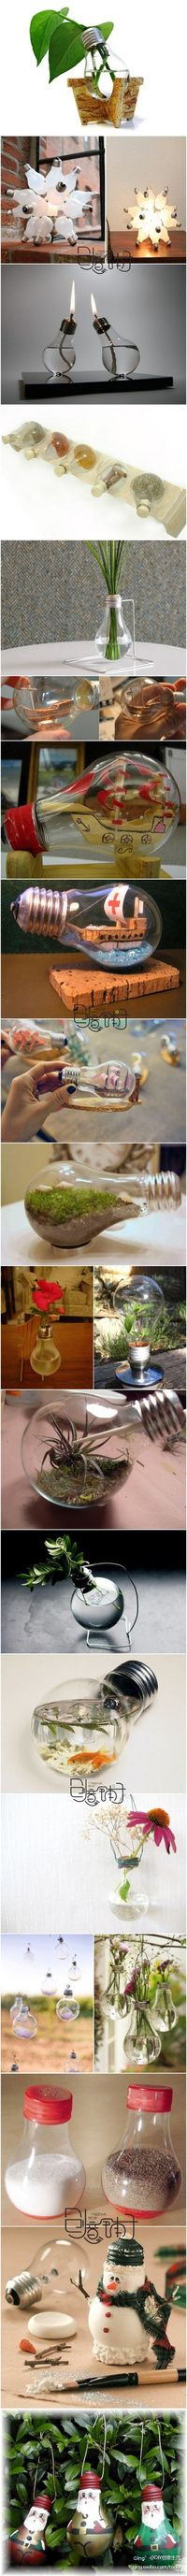 Things to do with old light bulbs